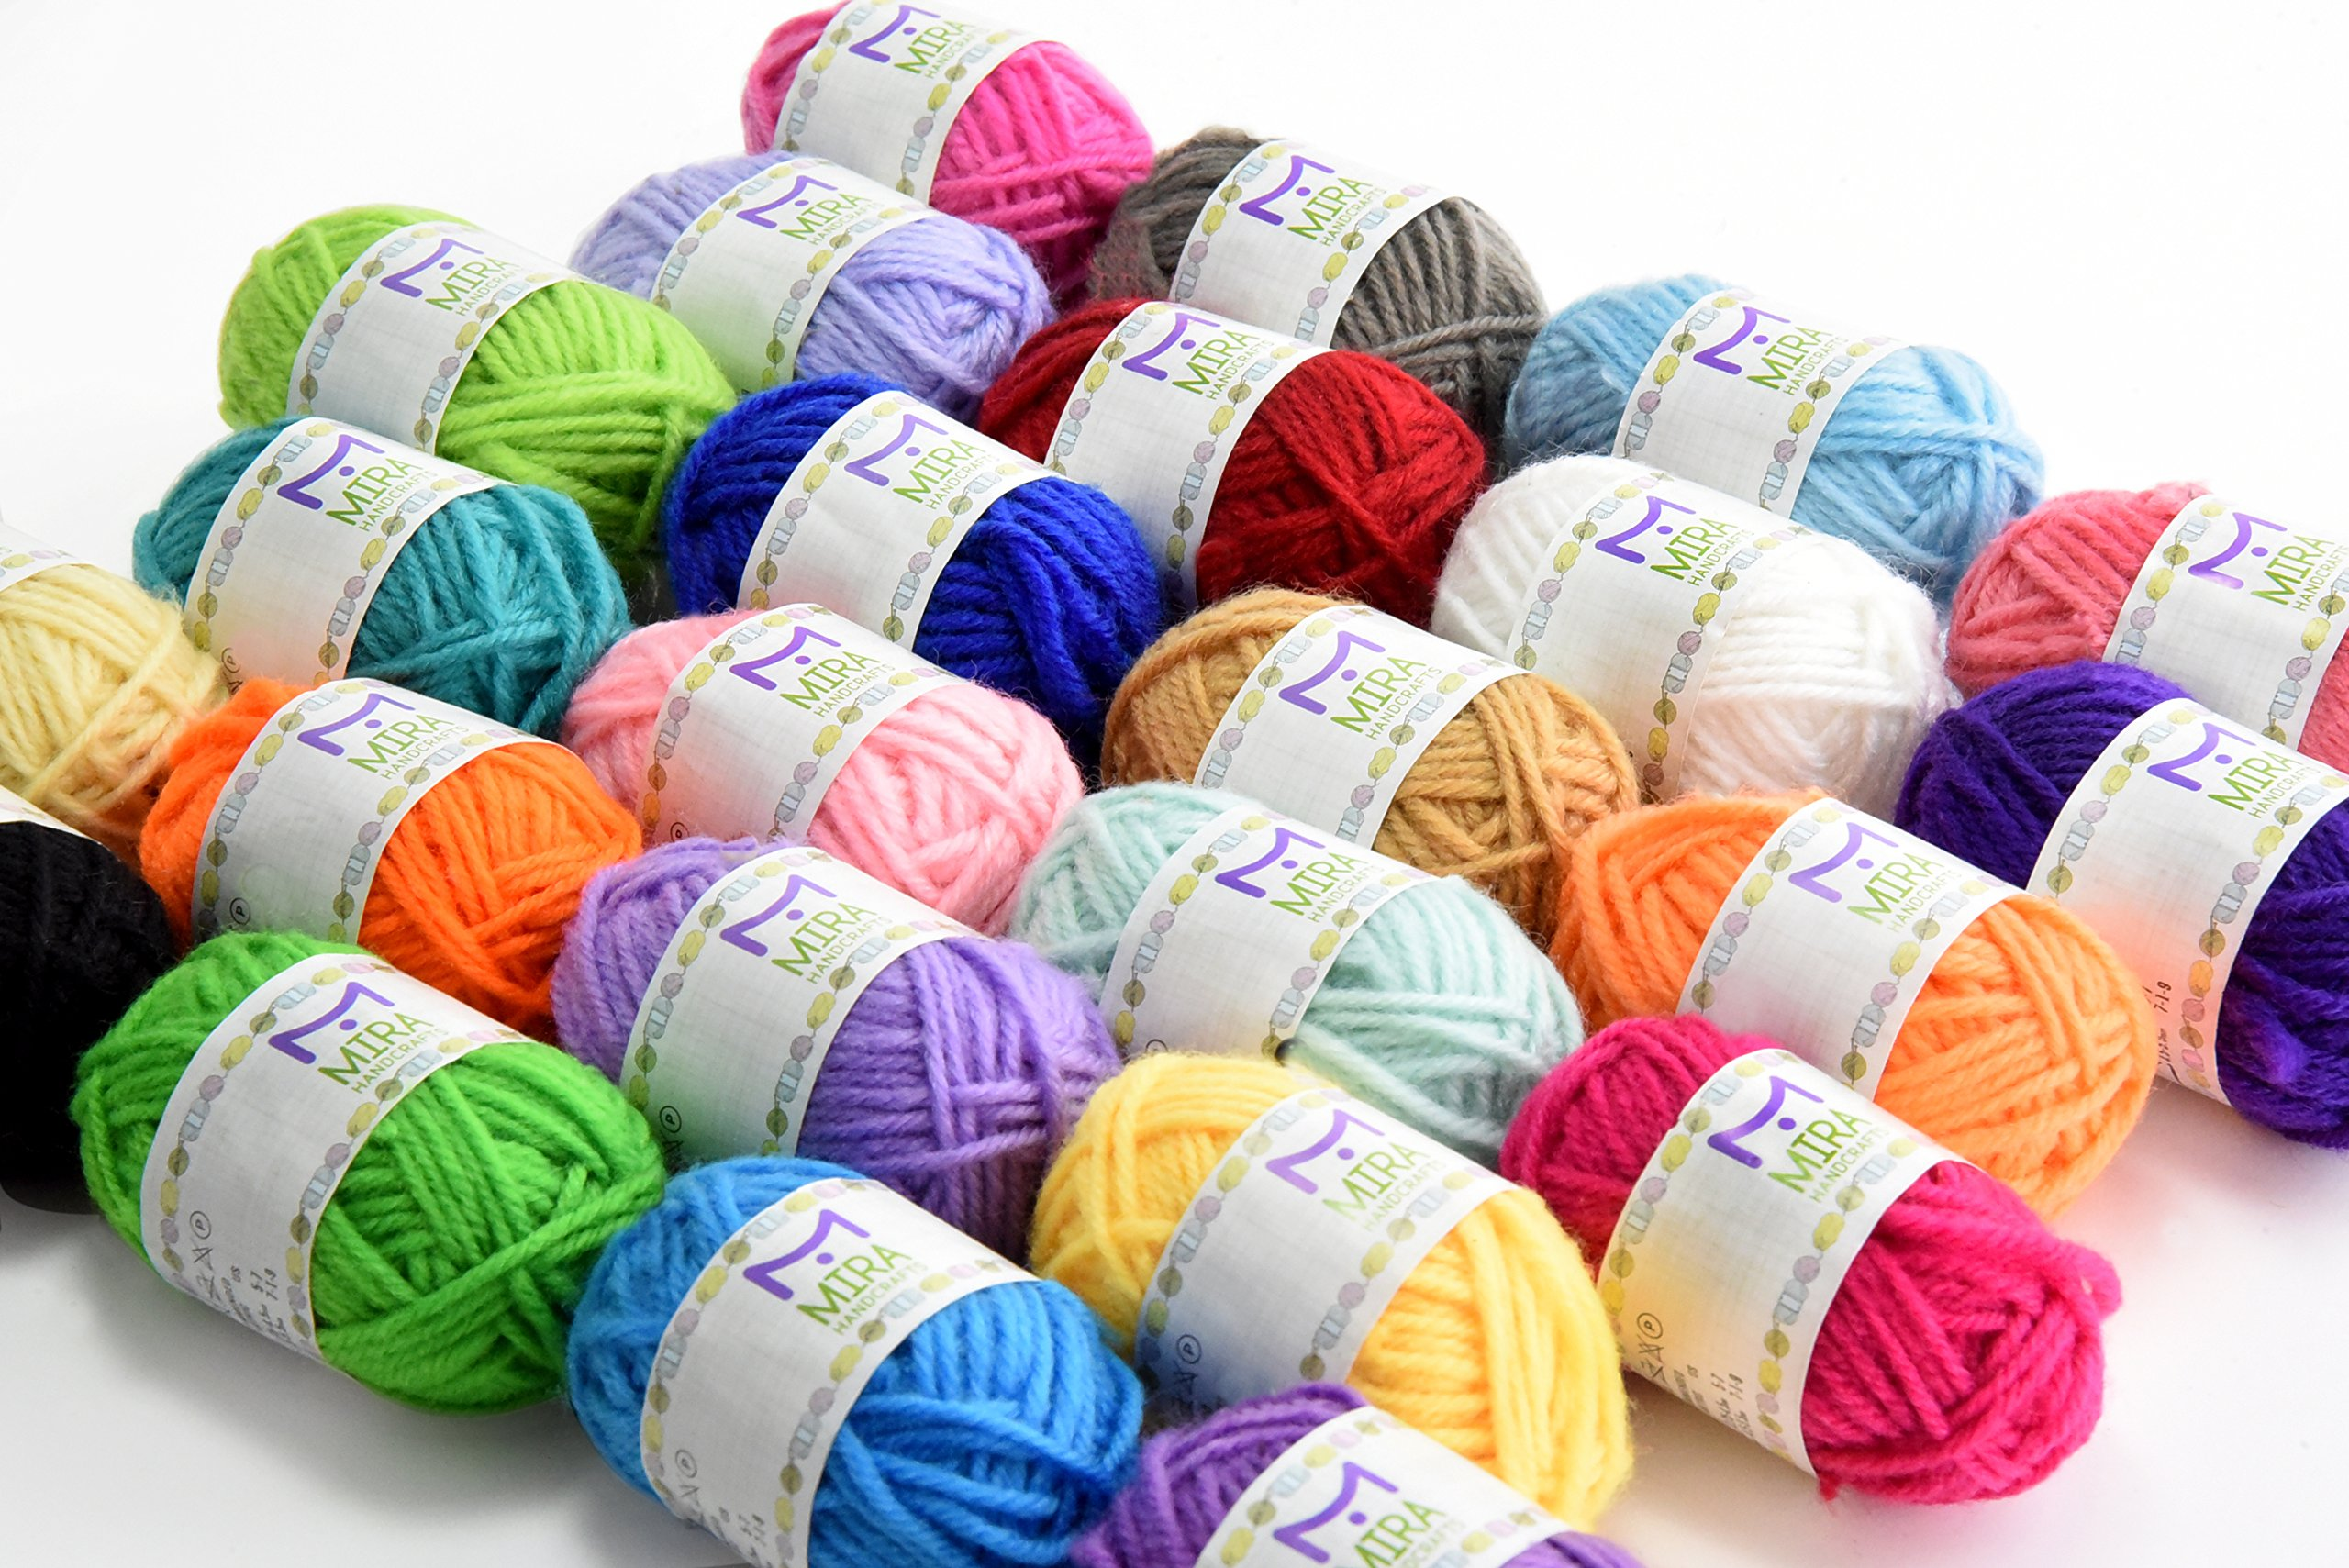 Mira Handcrafts 24 Acrylic Yarn Bonbons | Total of 525 Yards Craft Yarn for Knitting and Crochet | Includes 2 Crochet Hooks, 2 Weaving Needles, 7 E-Books | DK Yarn | Perfect Beginner Kit by Mira HandCrafts (Image #2)